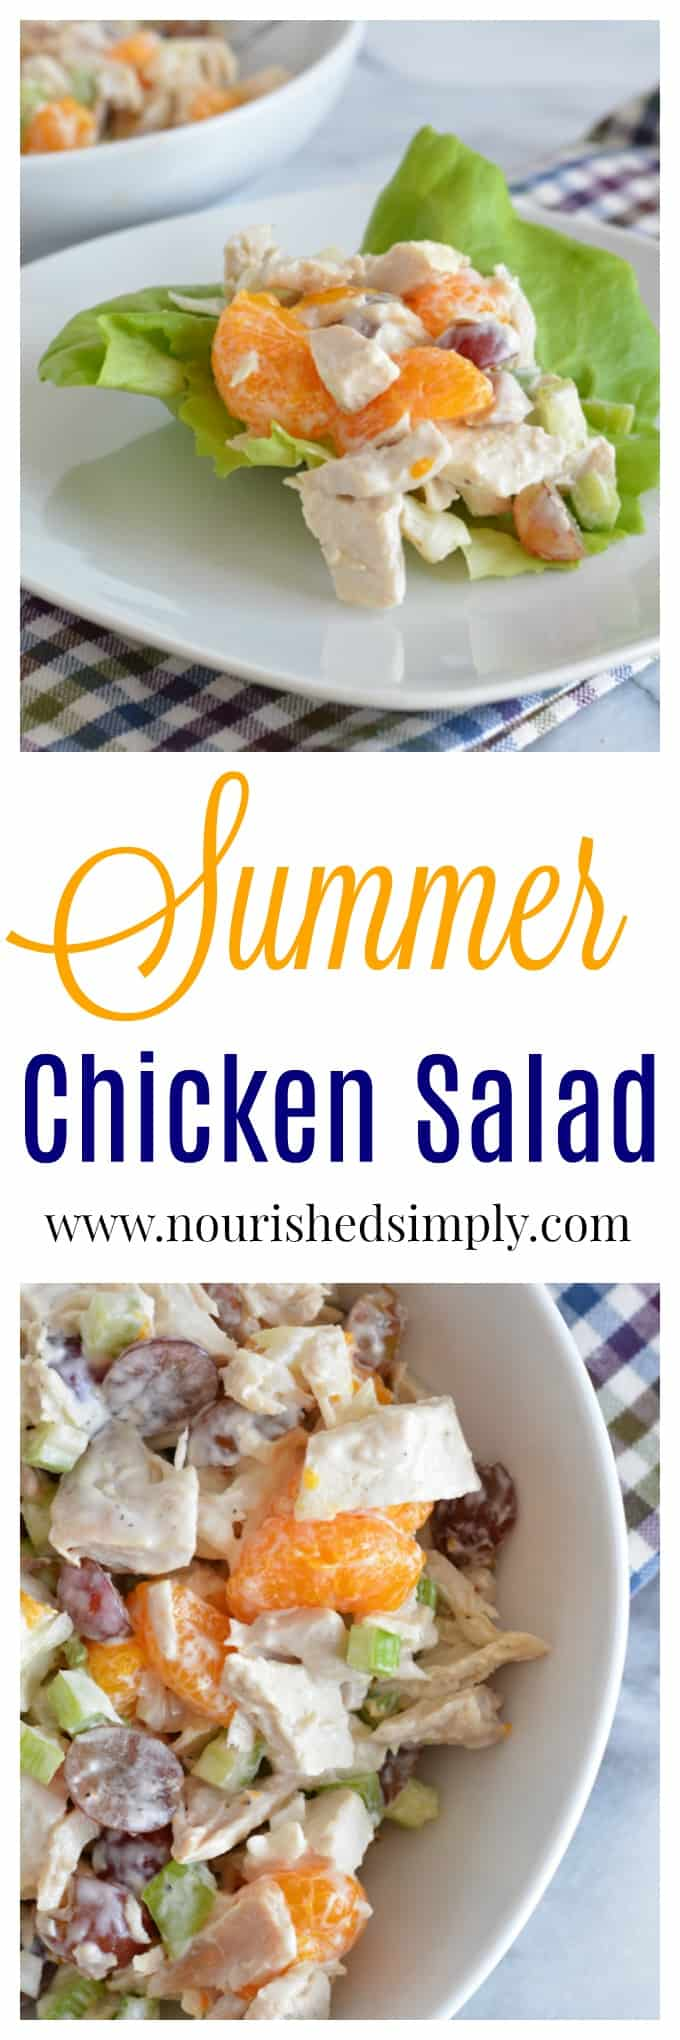 Having trouble eating enough fruit? Add fruit to chicken salad! This Summer Chicken Salad is filled with oranges and grapes.